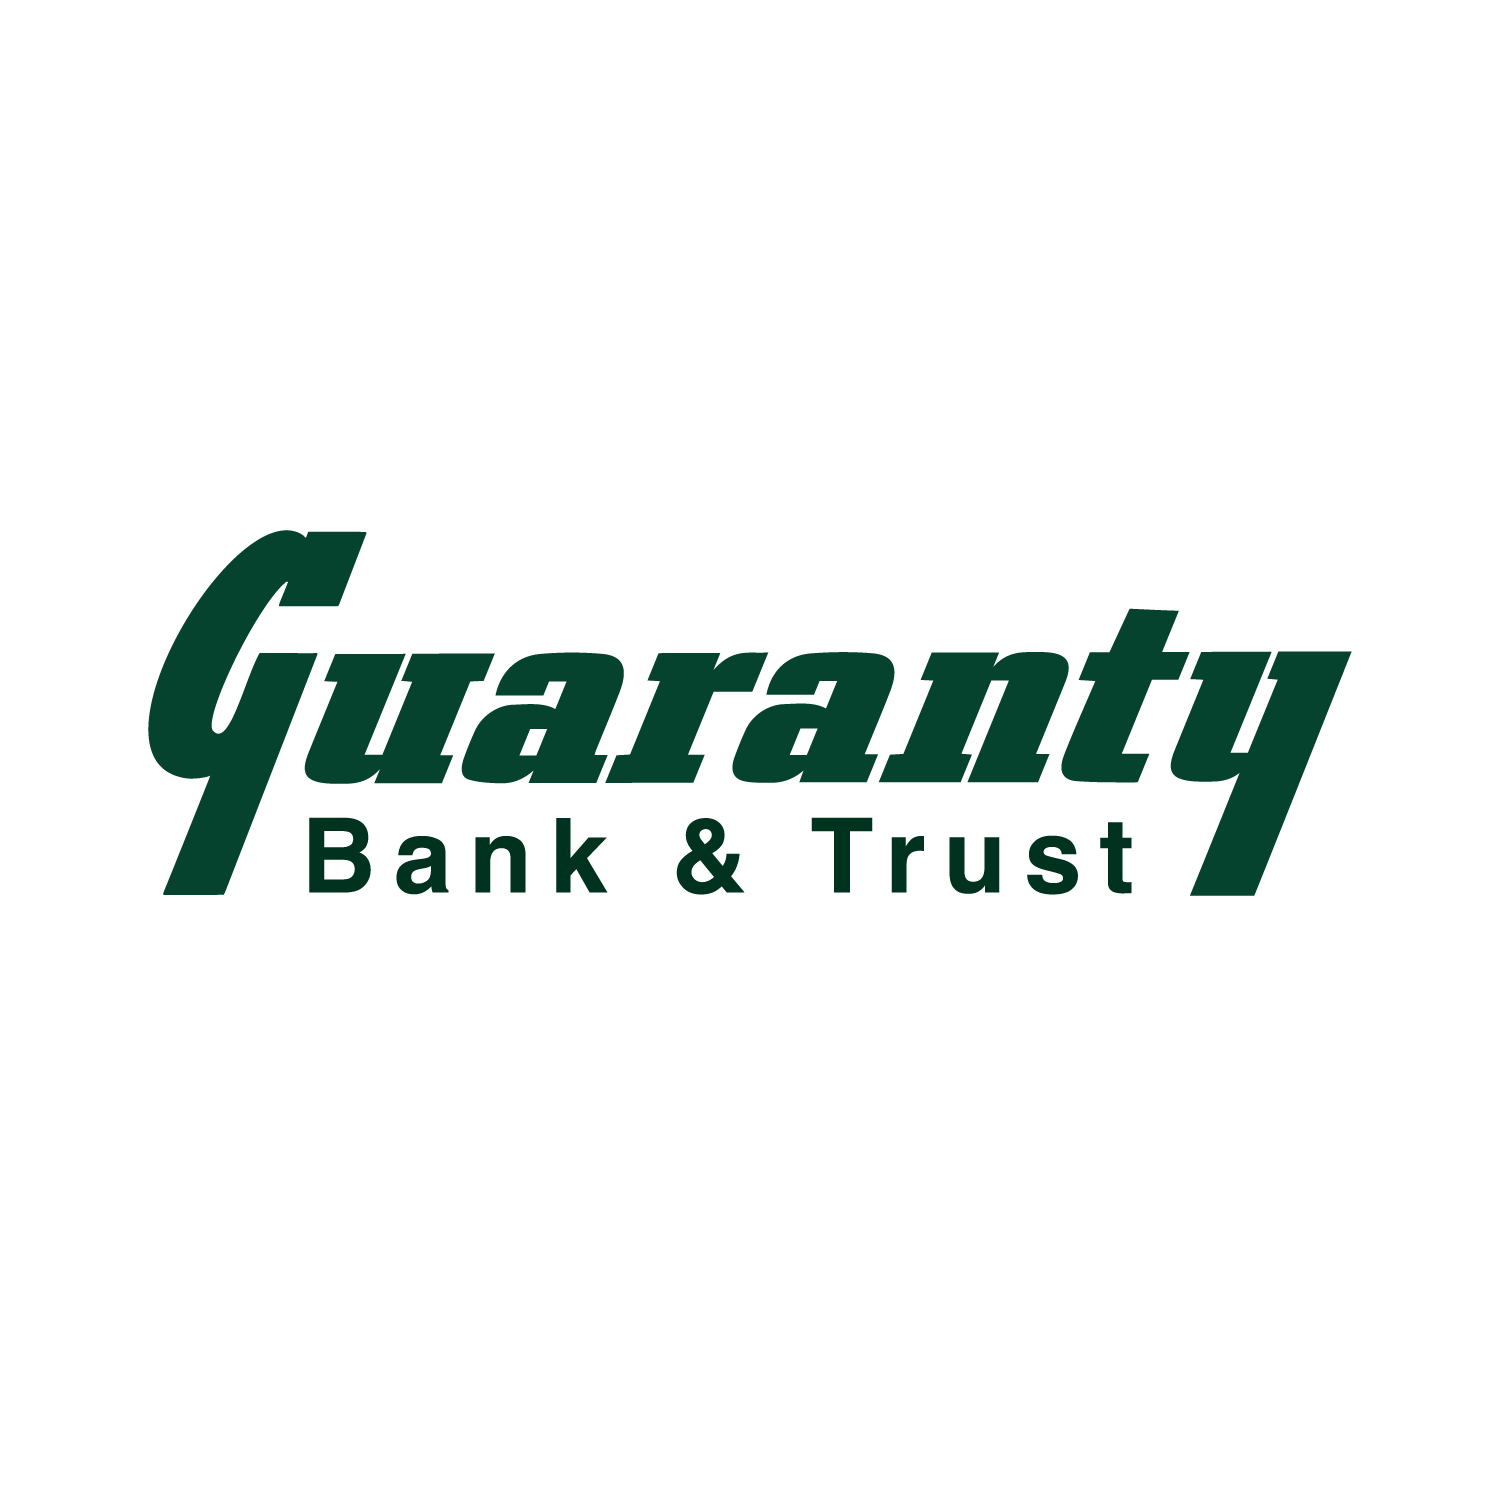 Veronica Mitchell - Mortgage Loan Officer- Guaranty Bank & Trust